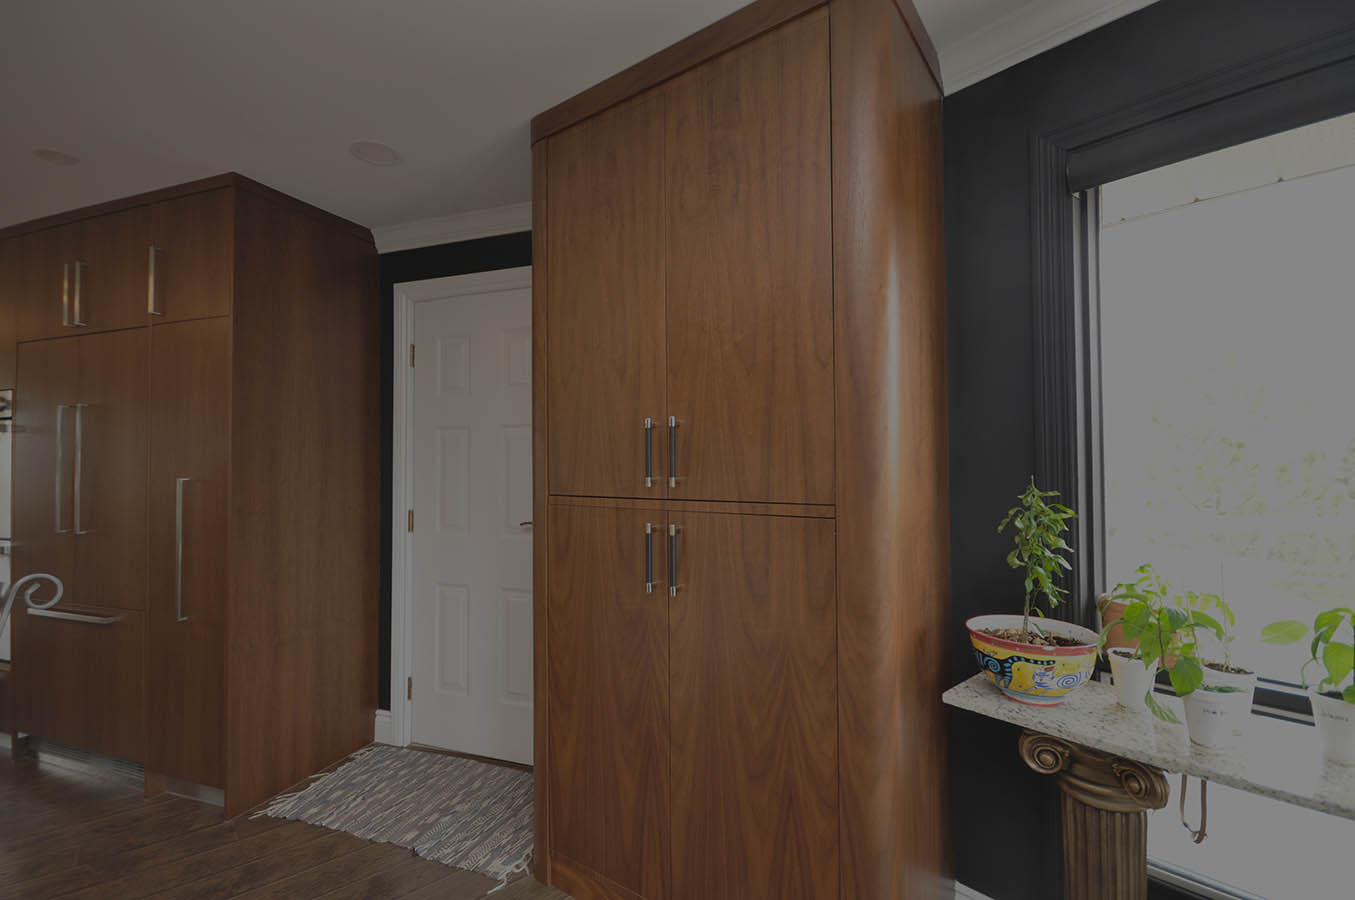 Cabinet doors and finishes